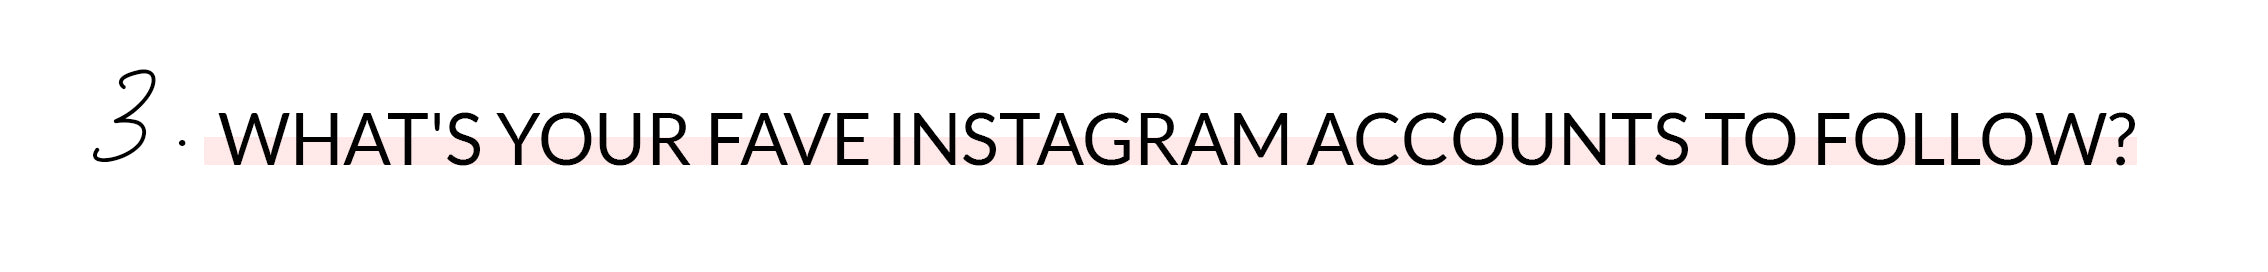 3. WHAT'S YOUR FAVE INSTAGRAM ACCOUNTS TO FOLLOW?